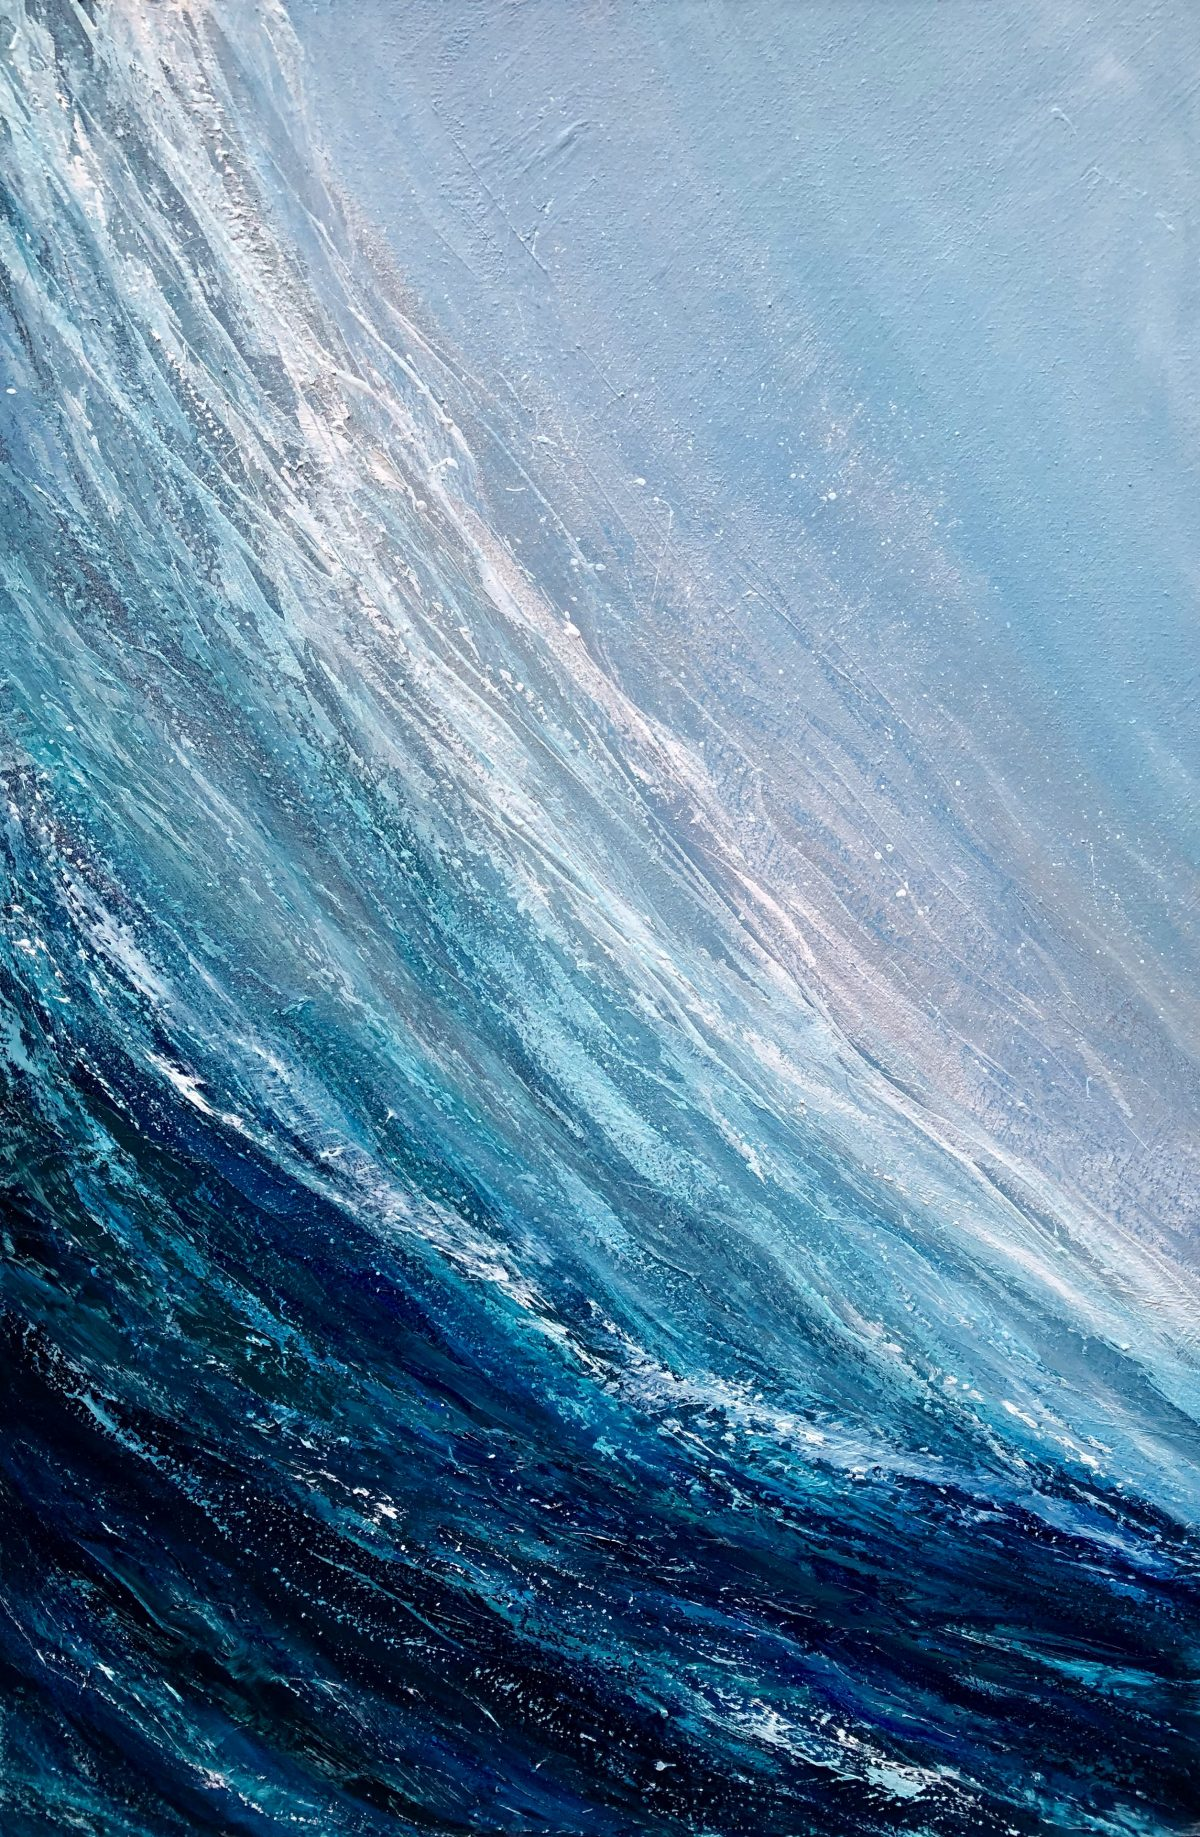 Surfing the Wave original oil on canvas surfing wave in blues and turquoise and measuring 60 x 90 cm £350 available www.catherinekennedy.co.uk